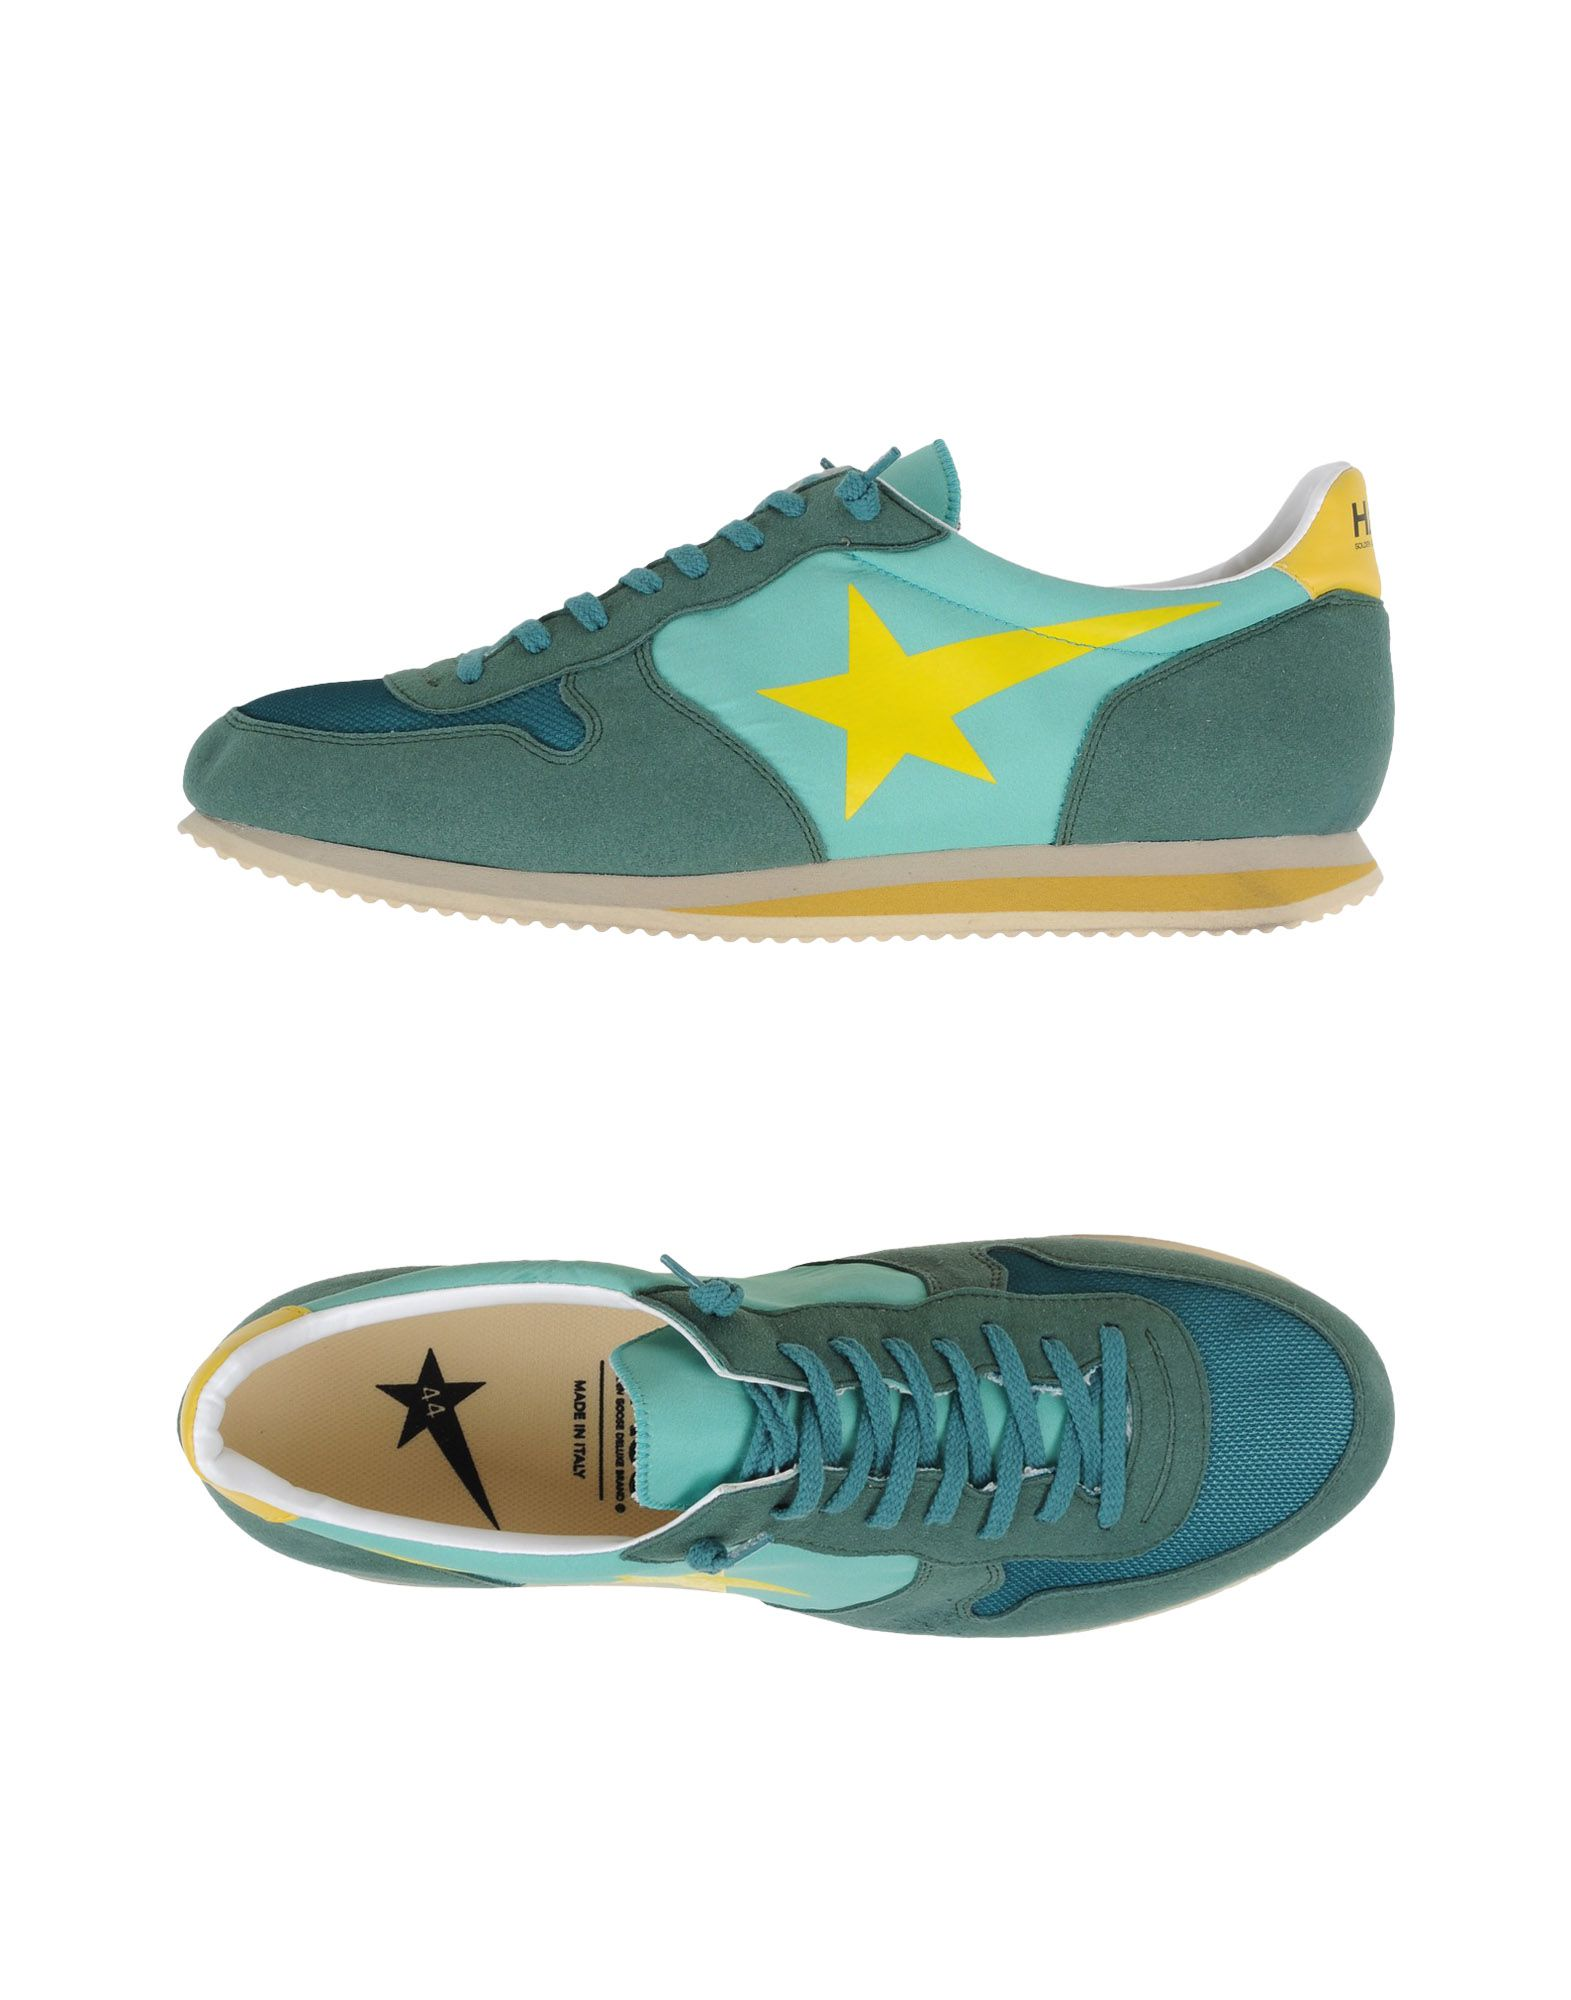 Sneakers Haus Golden Goose Sneakers Haus - Uomo - Acquista online su